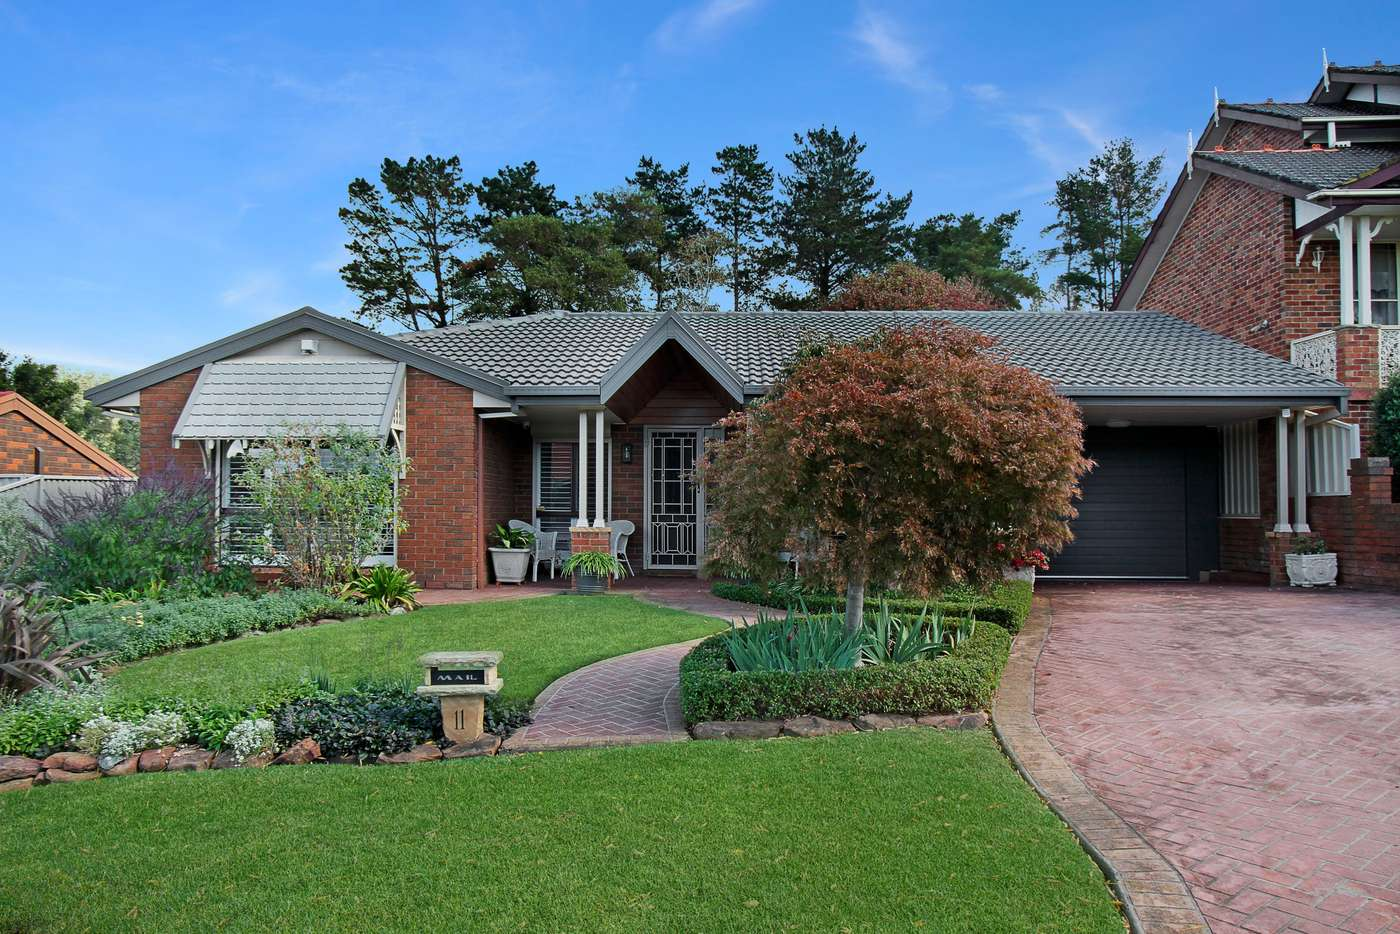 Main view of Homely house listing, 11 Darling Street, Abbotsbury NSW 2176